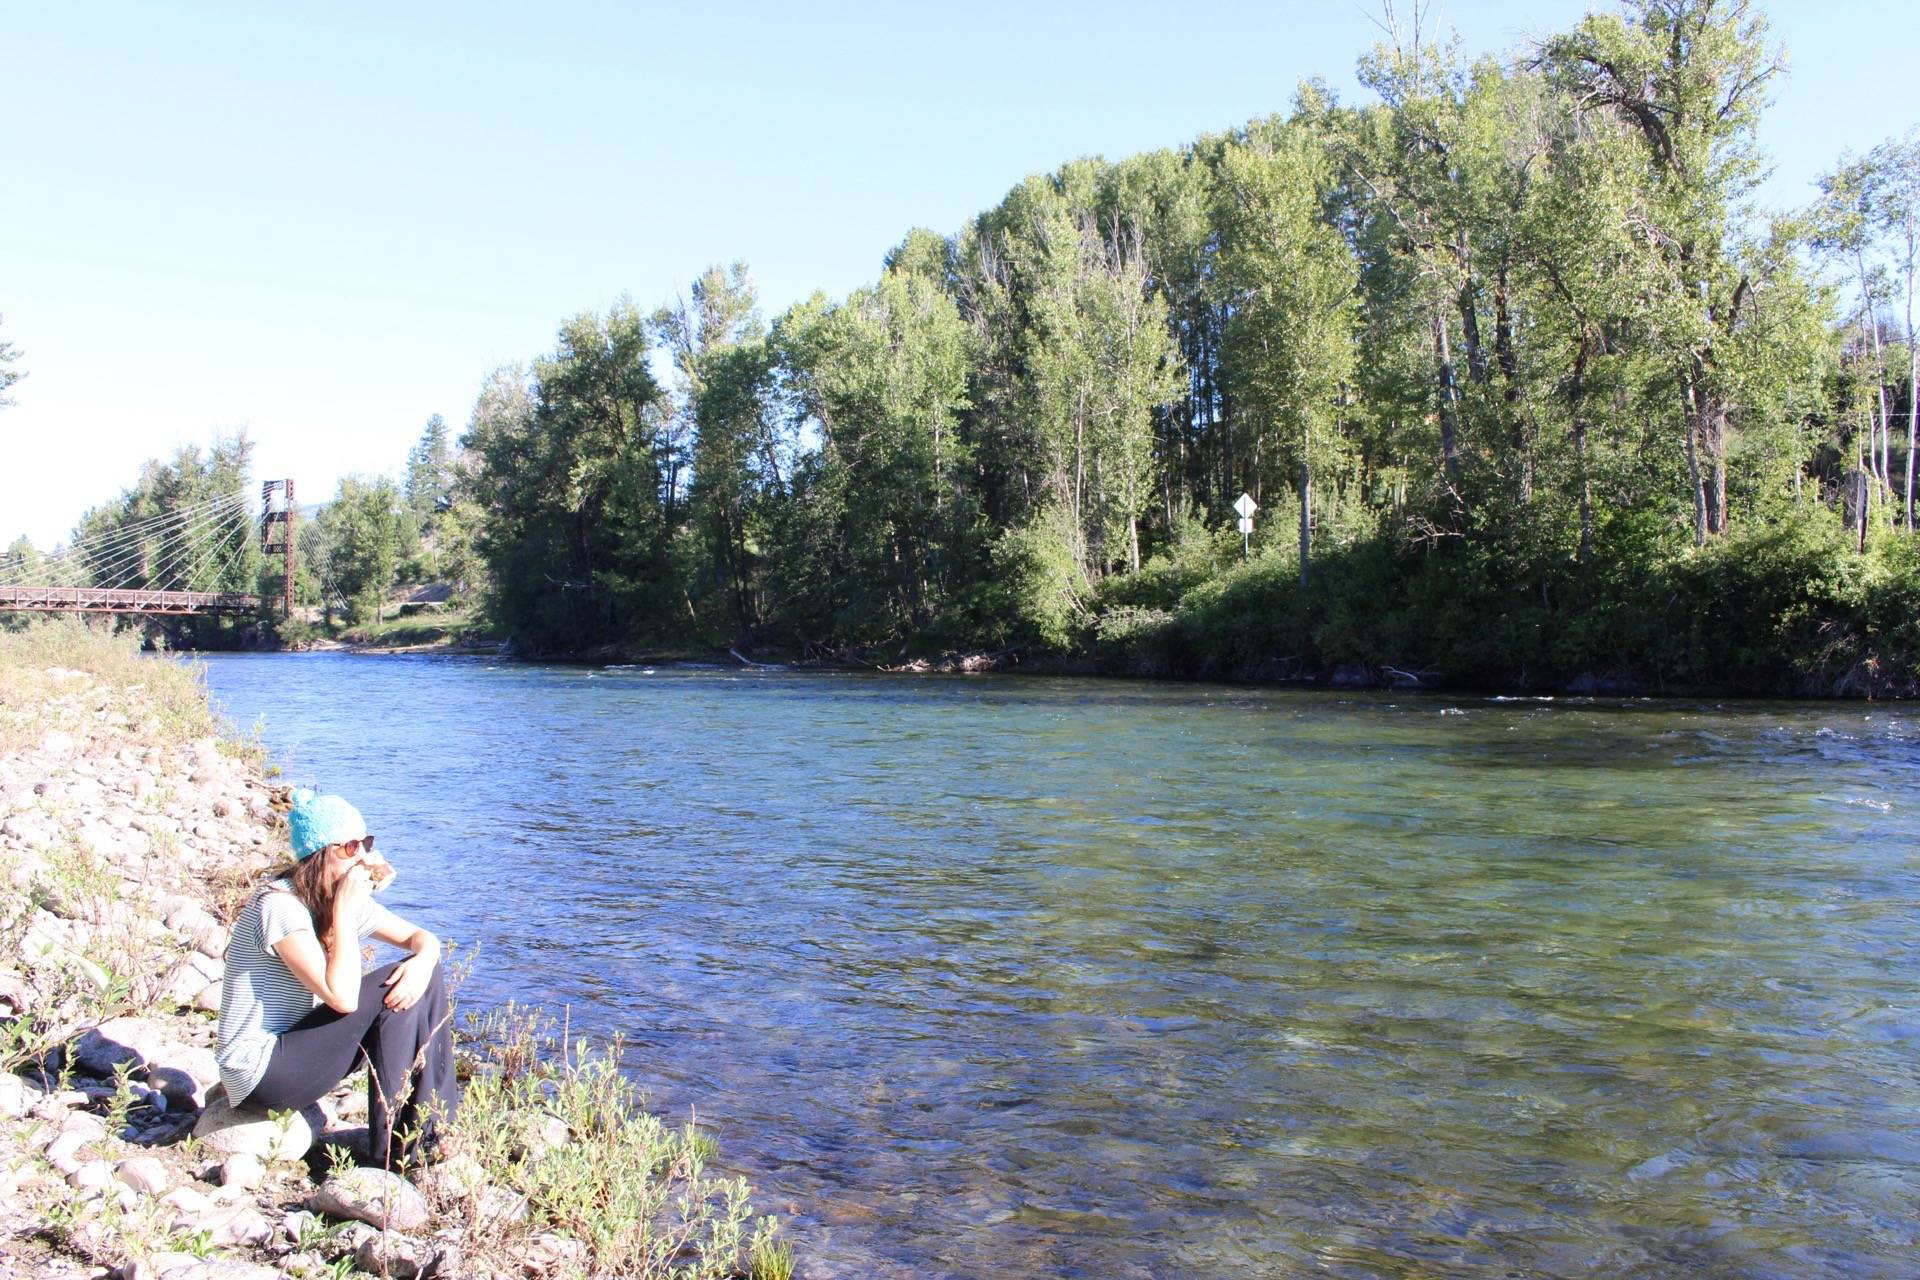 Our room at the Methow River Lodge opened up to this river. A wonderful place to sip my morning coffee.